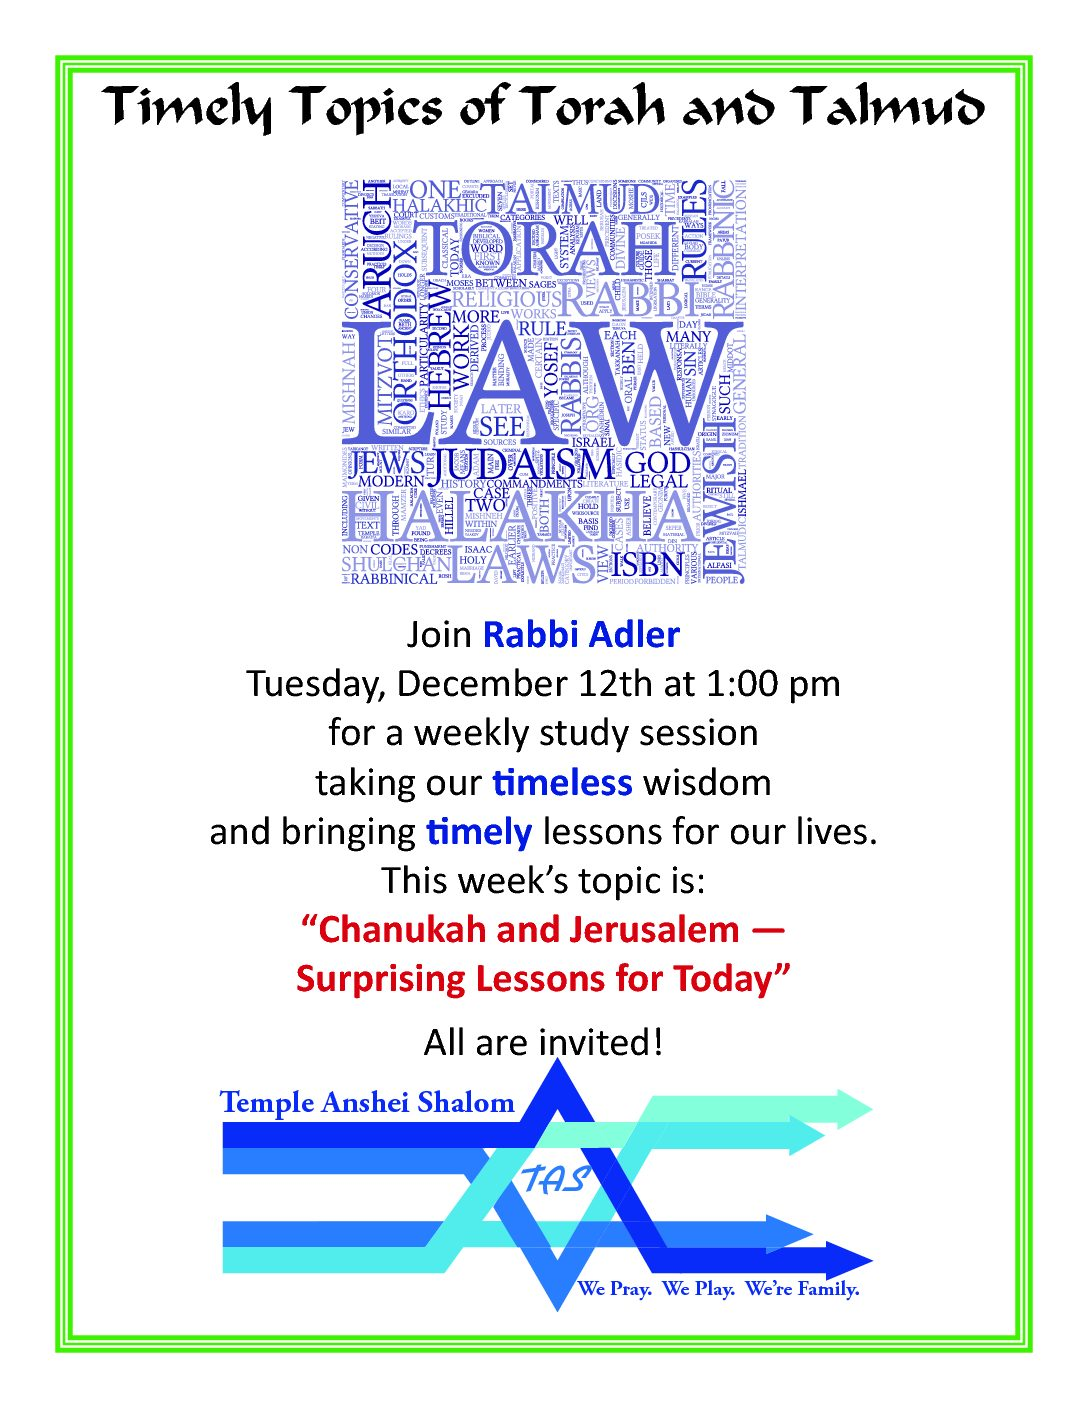 Timely Topics of Torah and Talmud with Rabbi Adler